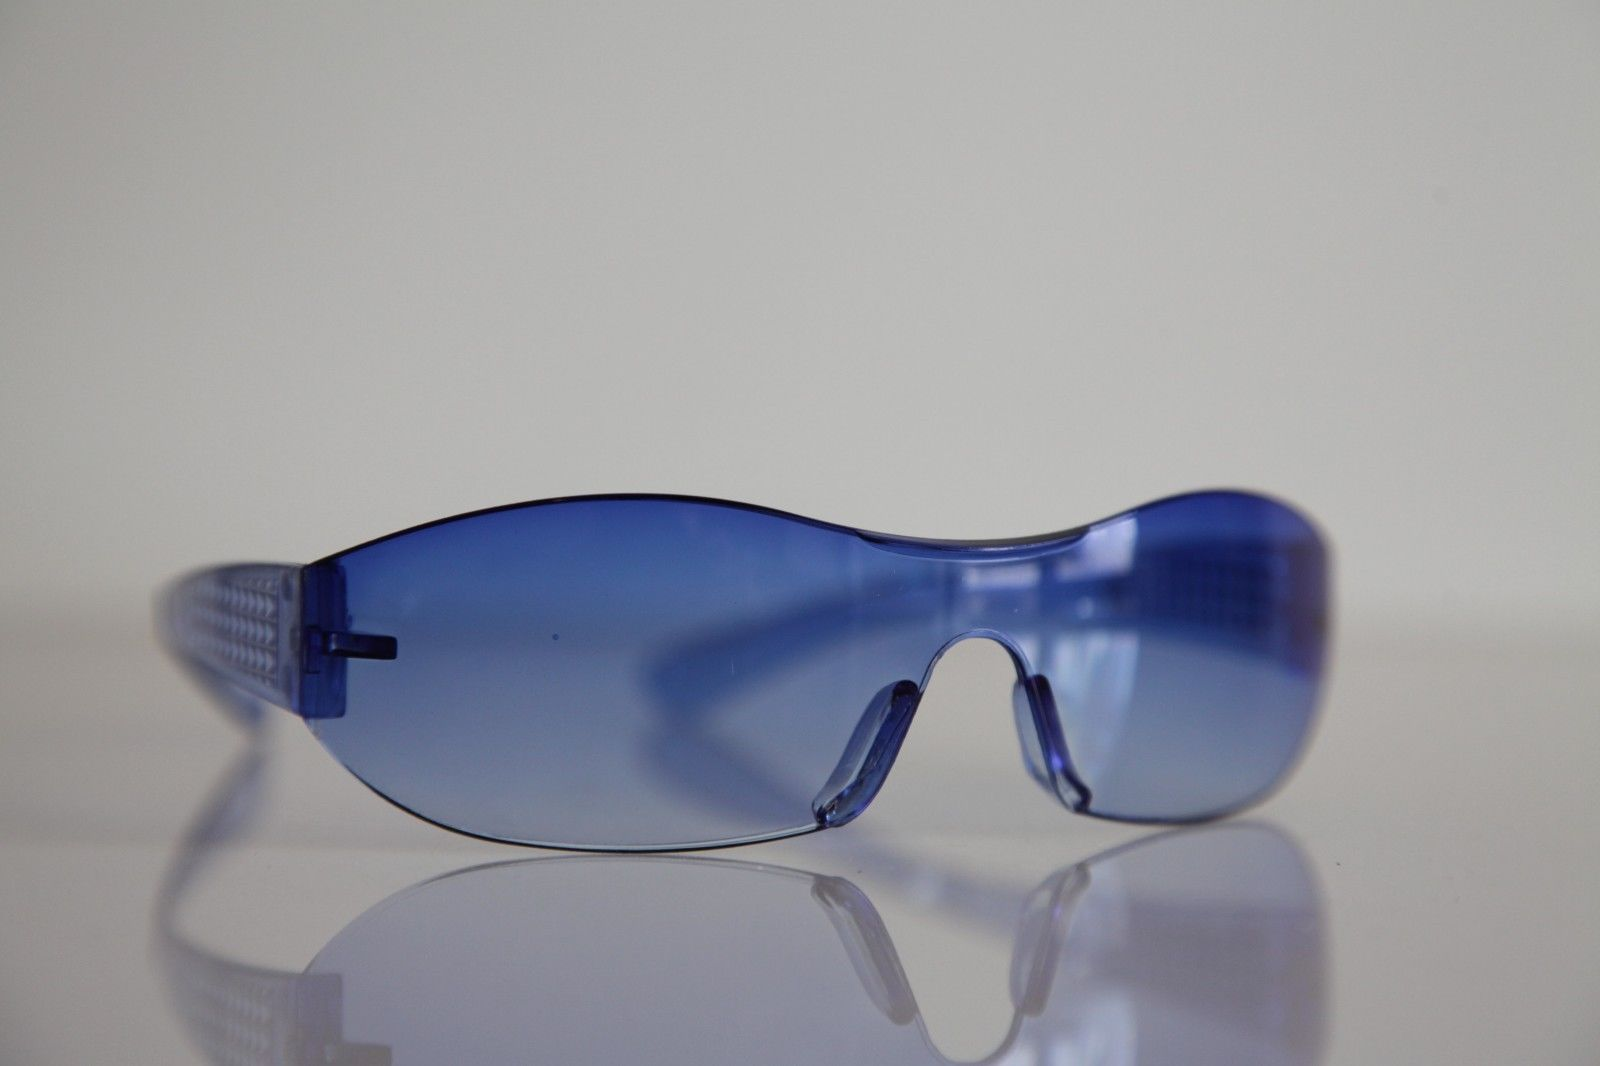 Electric Blue Rimless Sunglasses - Sunglasses